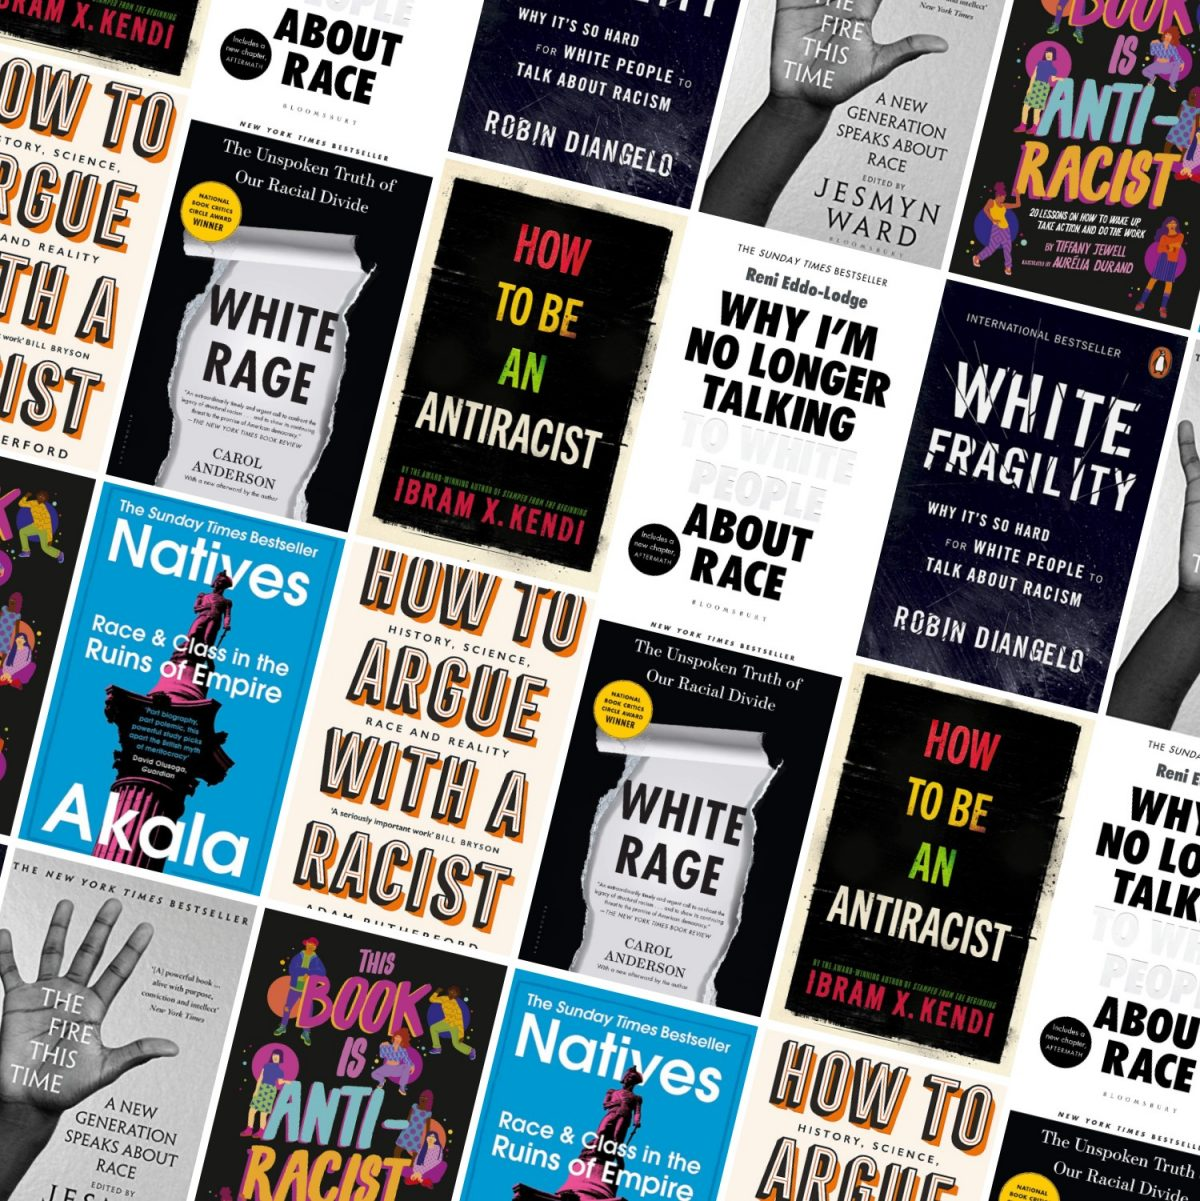 Books: New York Times Bestsellers on race and racial inequality